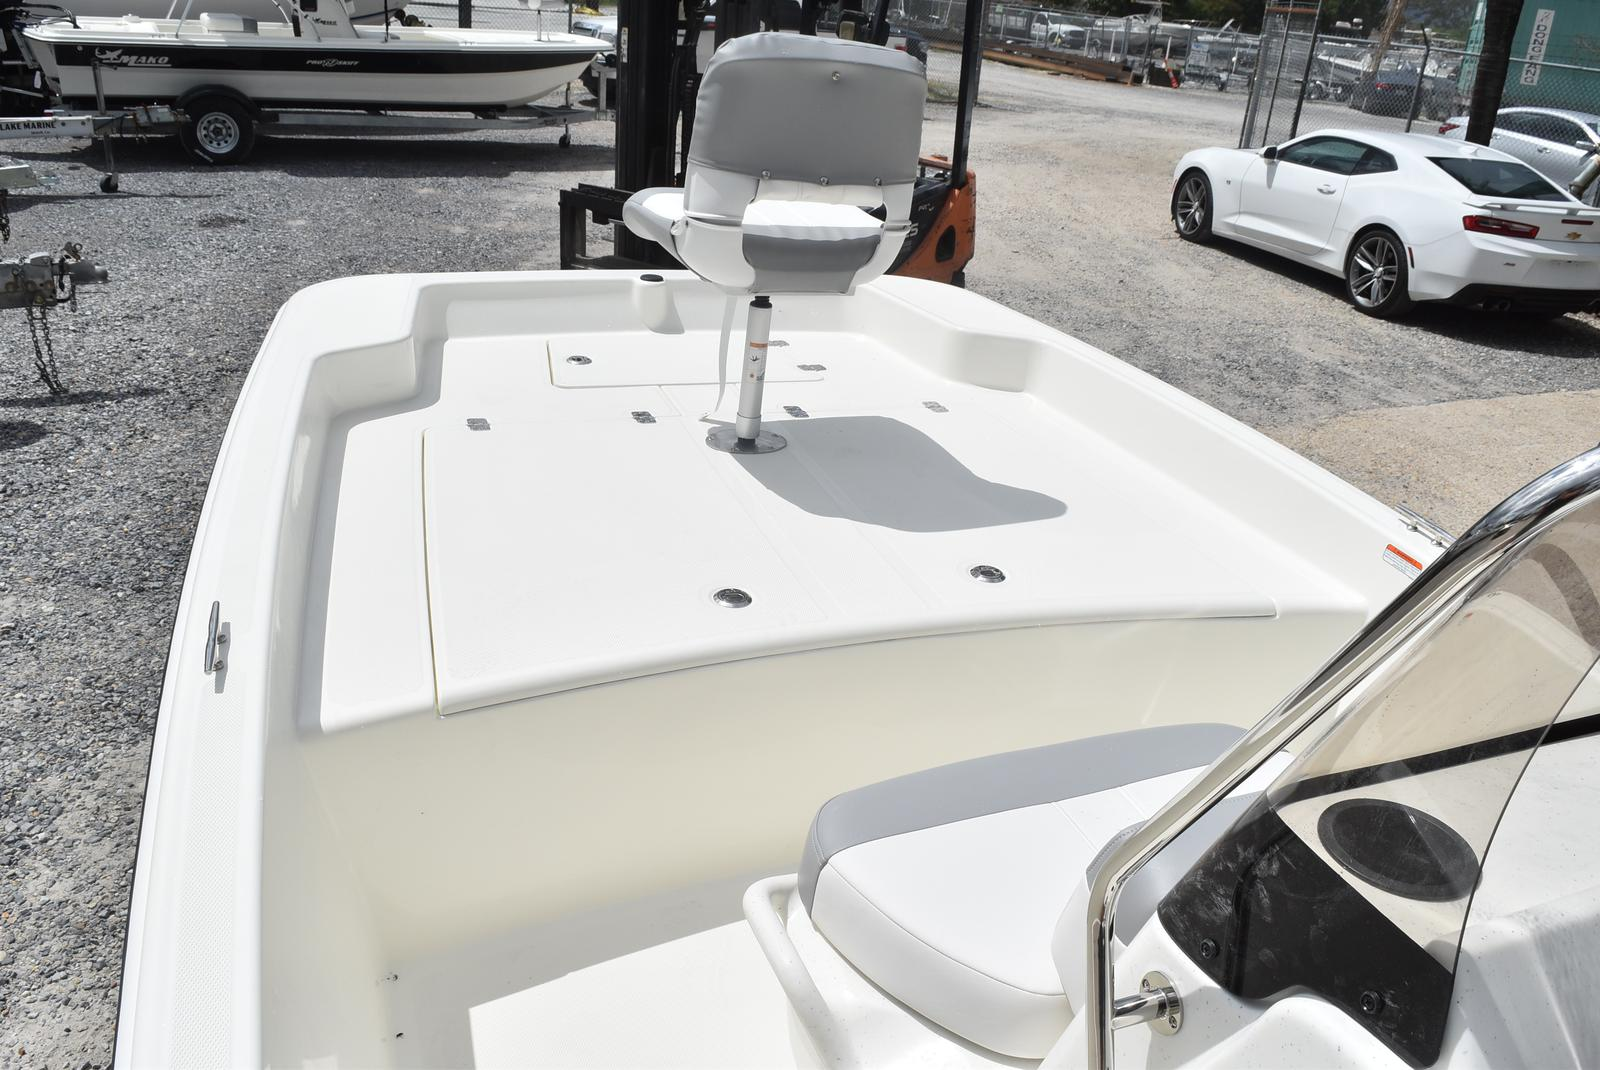 2020 Mako boat for sale, model of the boat is Pro Skiff 17, 75 ELPT & Image # 414 of 702